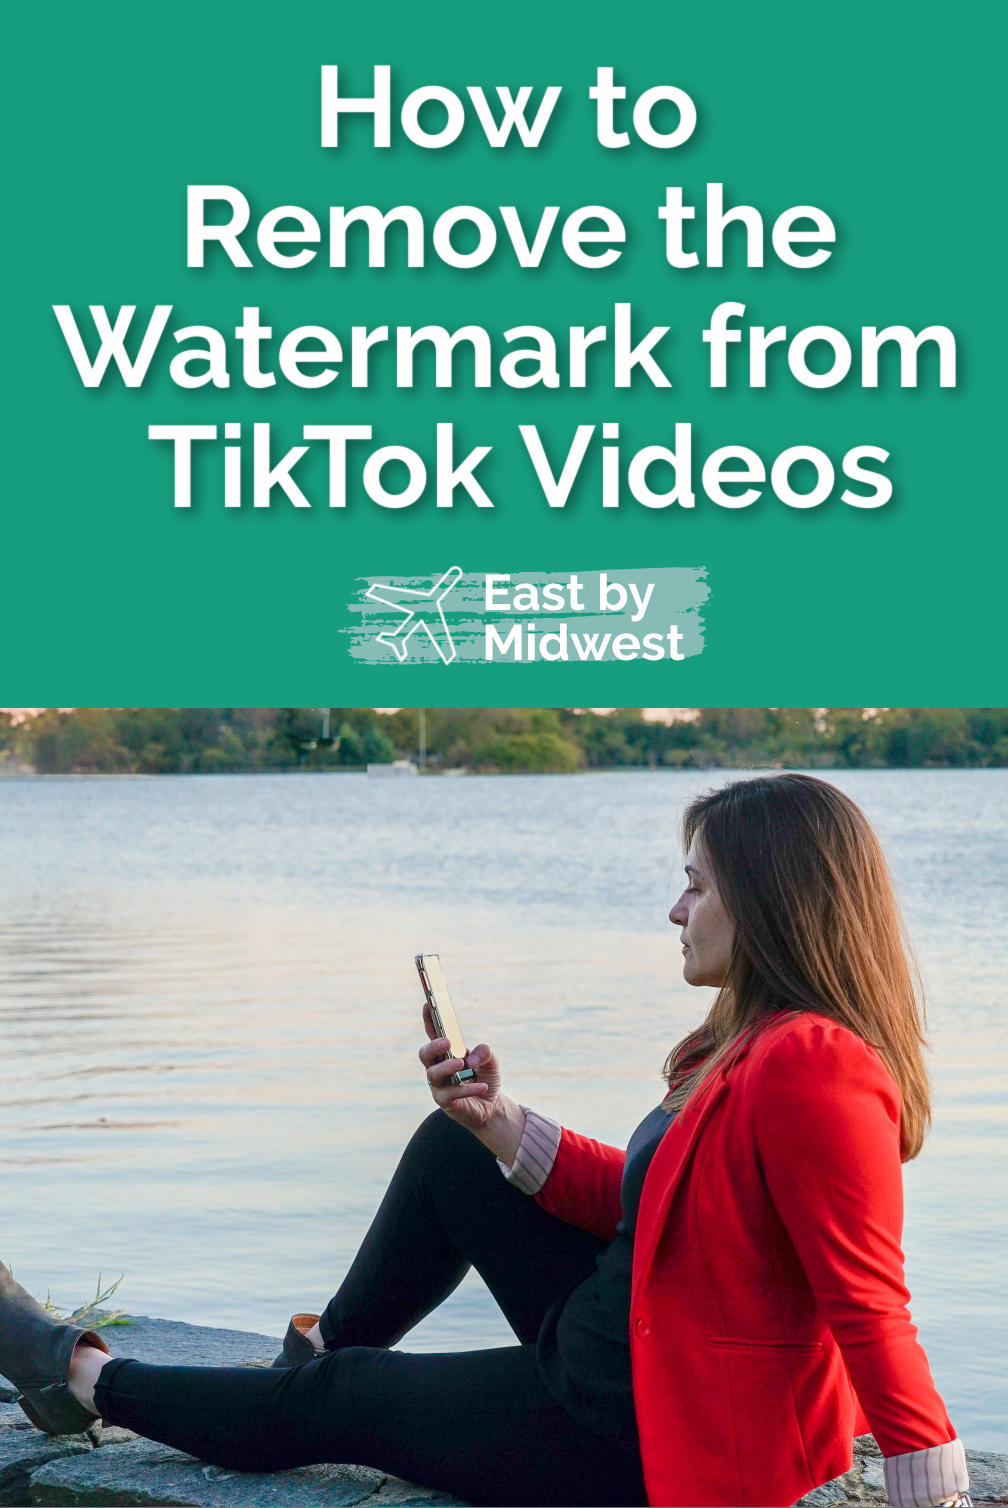 How to Remove the Watermark from TikTok Videos